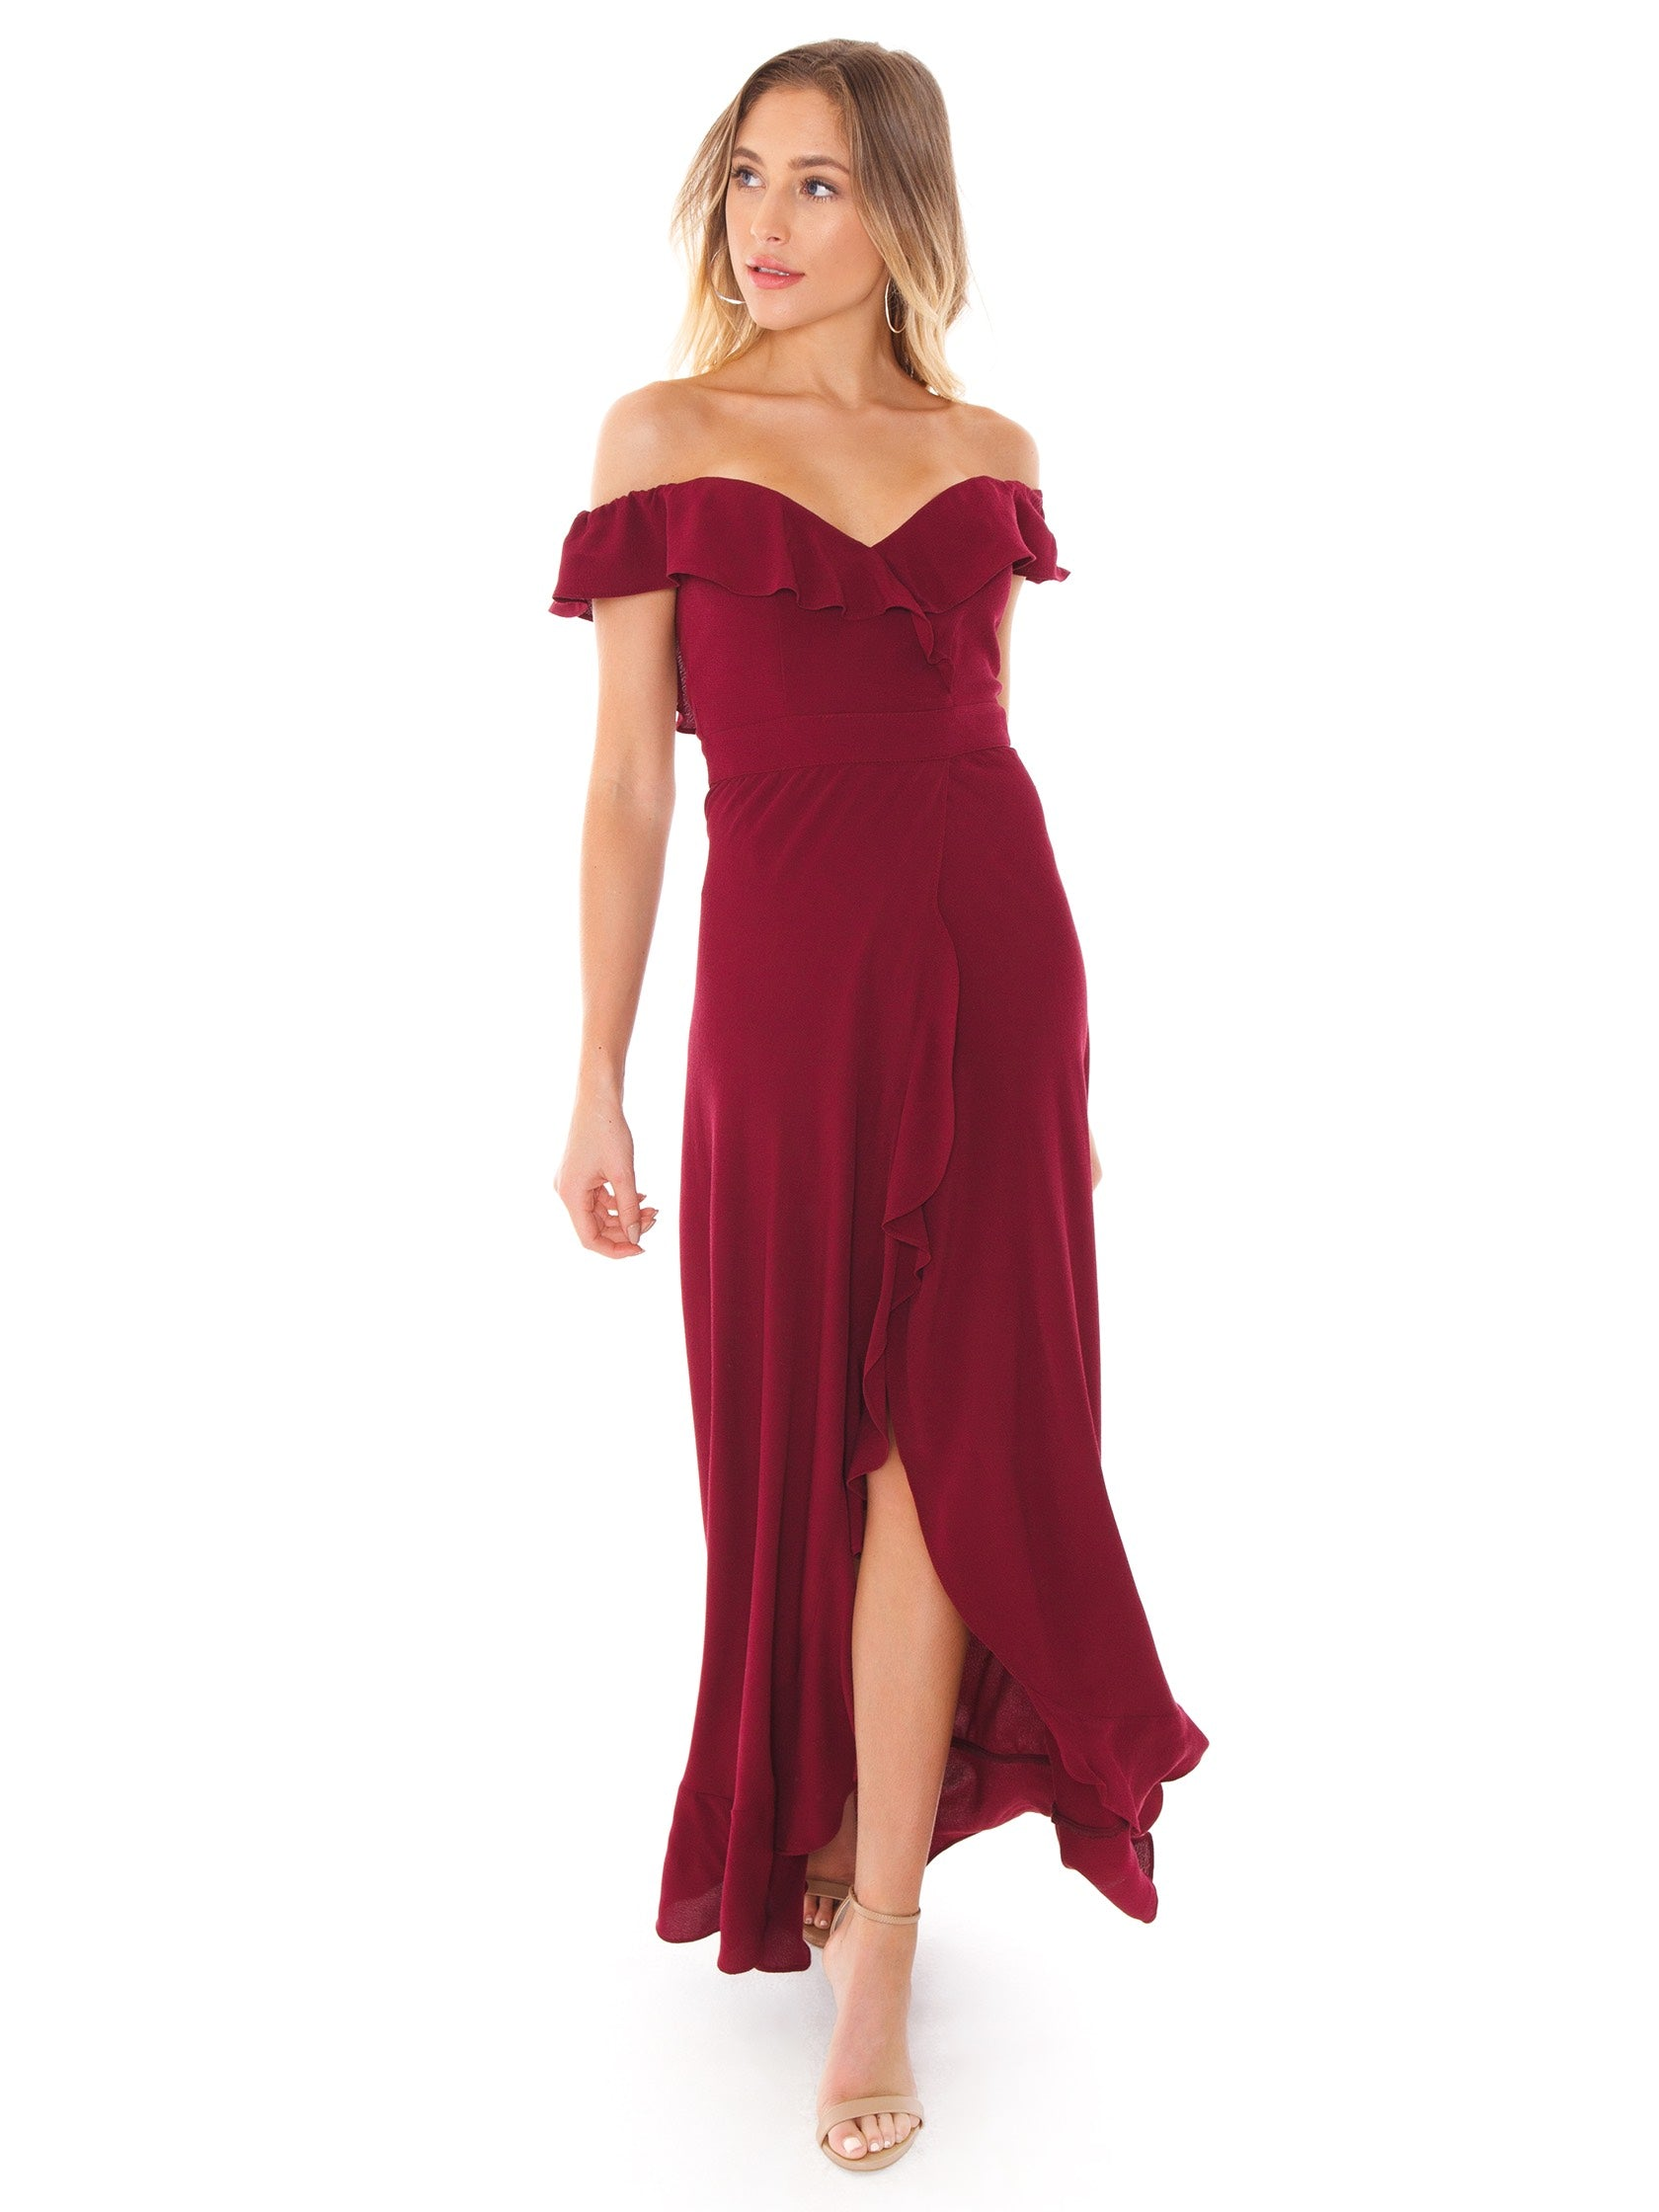 Women wearing a dress rental from Flynn Skye called Monica Maxi Dress